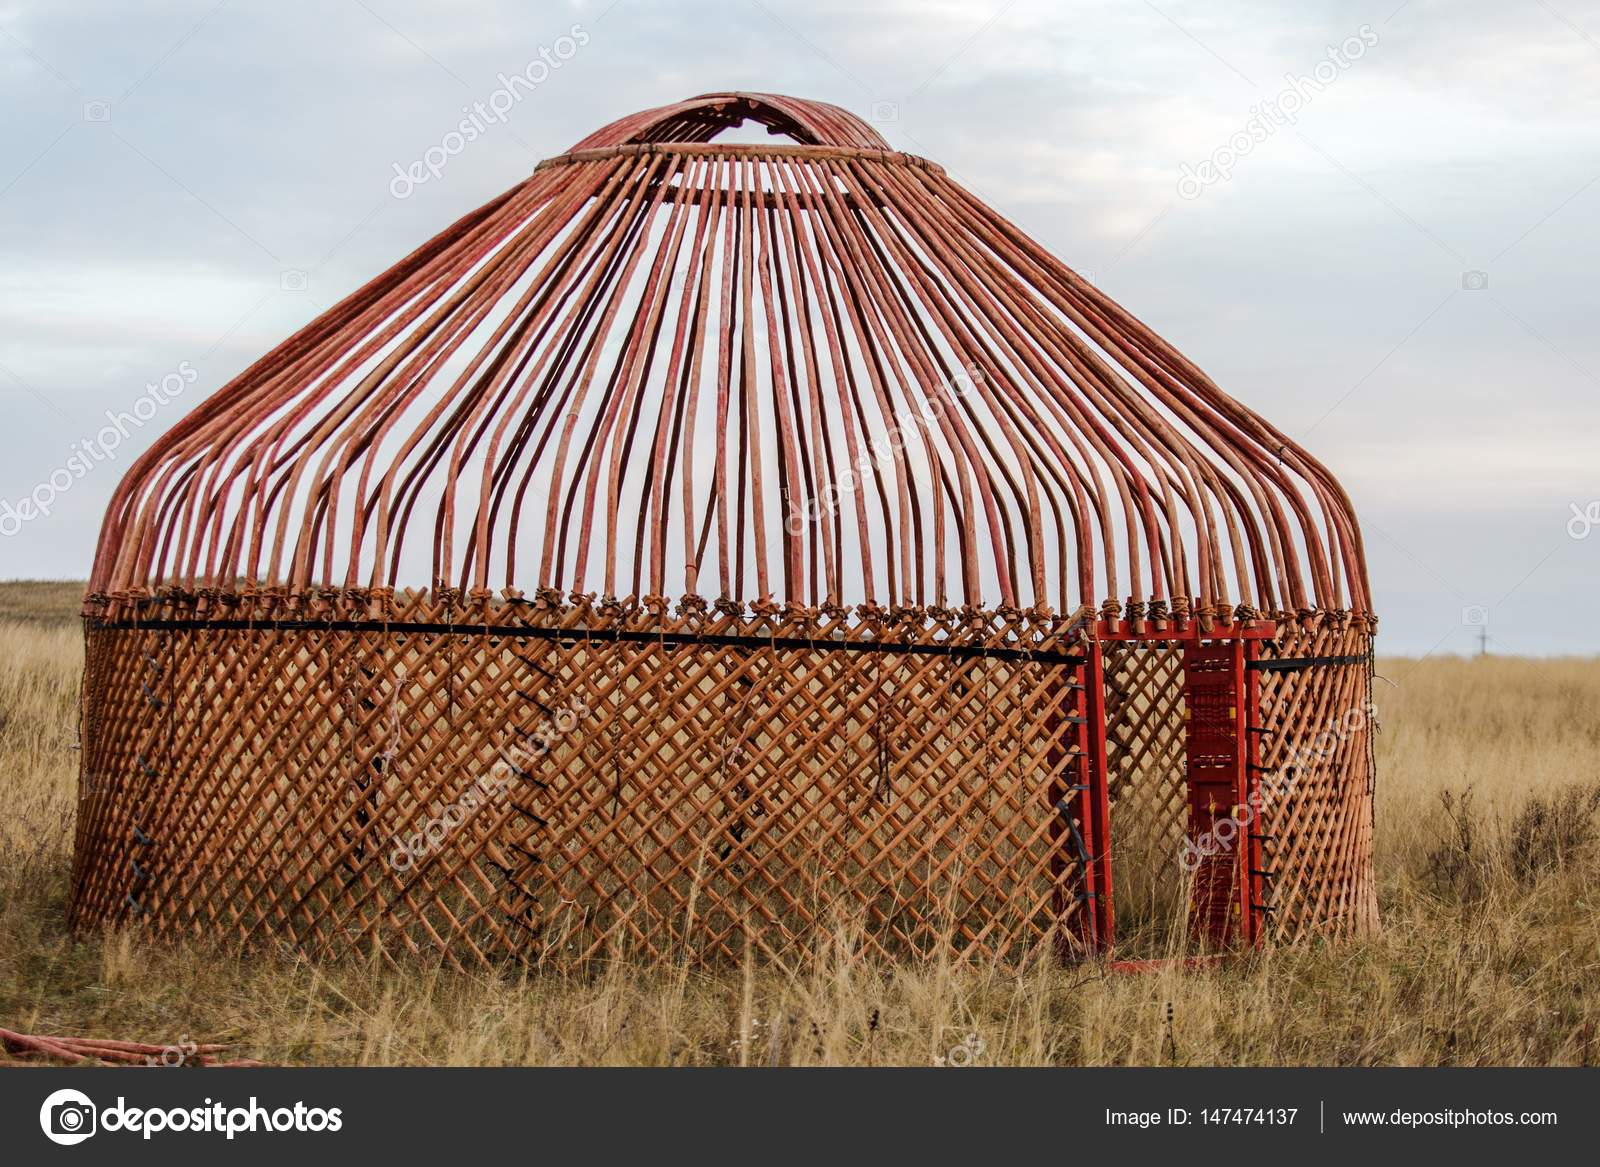 White Yurt - Nomadu0027s tent is the national dwelling of Kazakhstan people u2014 Stock Photo & White Yurt - Nomadu0027s tent is the national dwelling of Kazakhstan ...